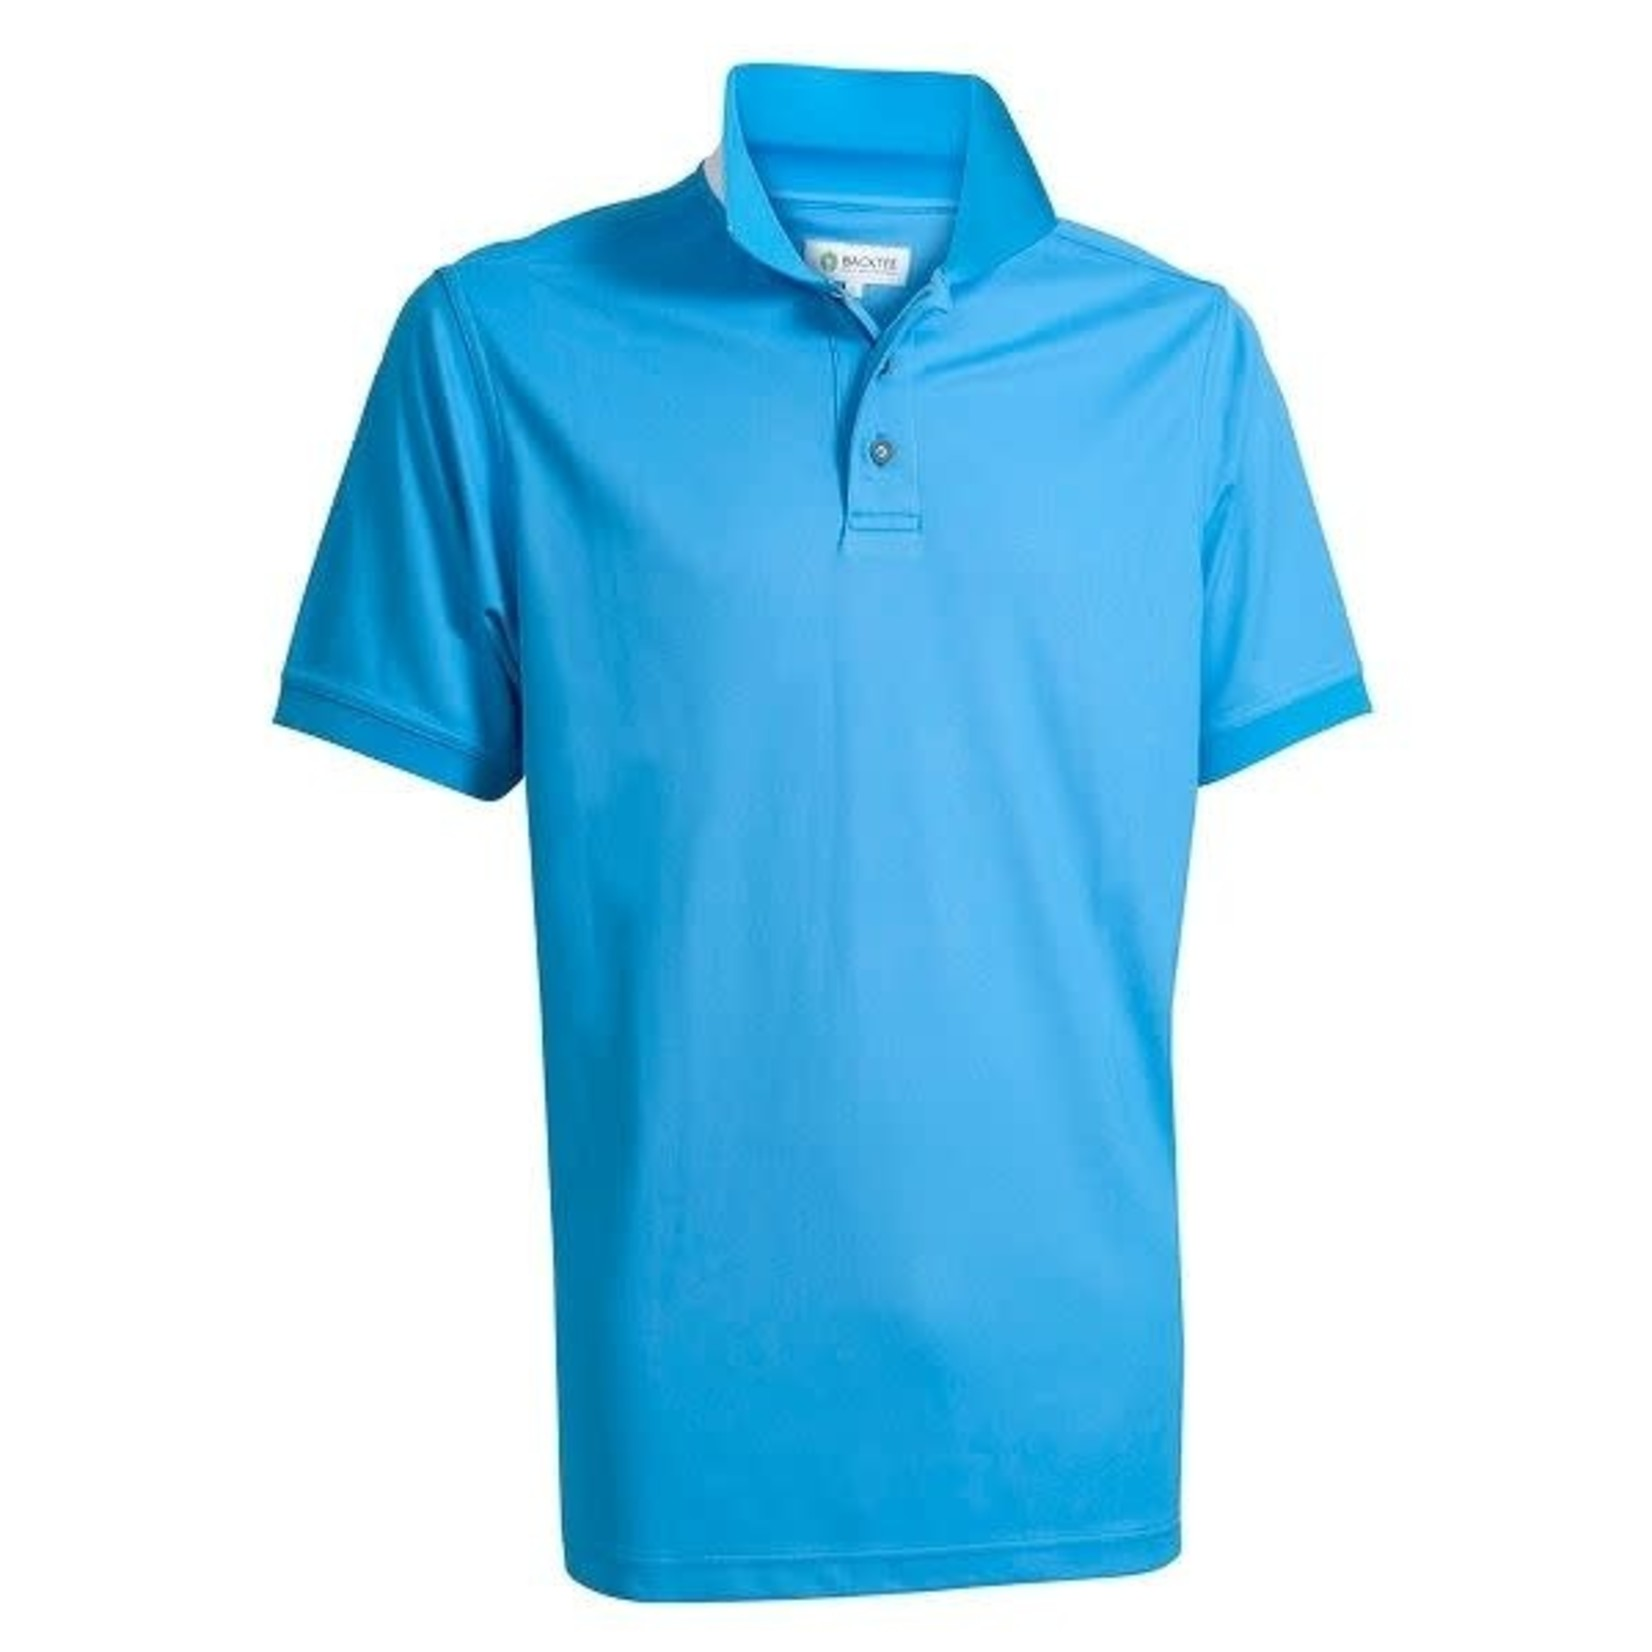 Backtee Backtee Mens Quick Dry Perf. Polo MALIBU BLUE